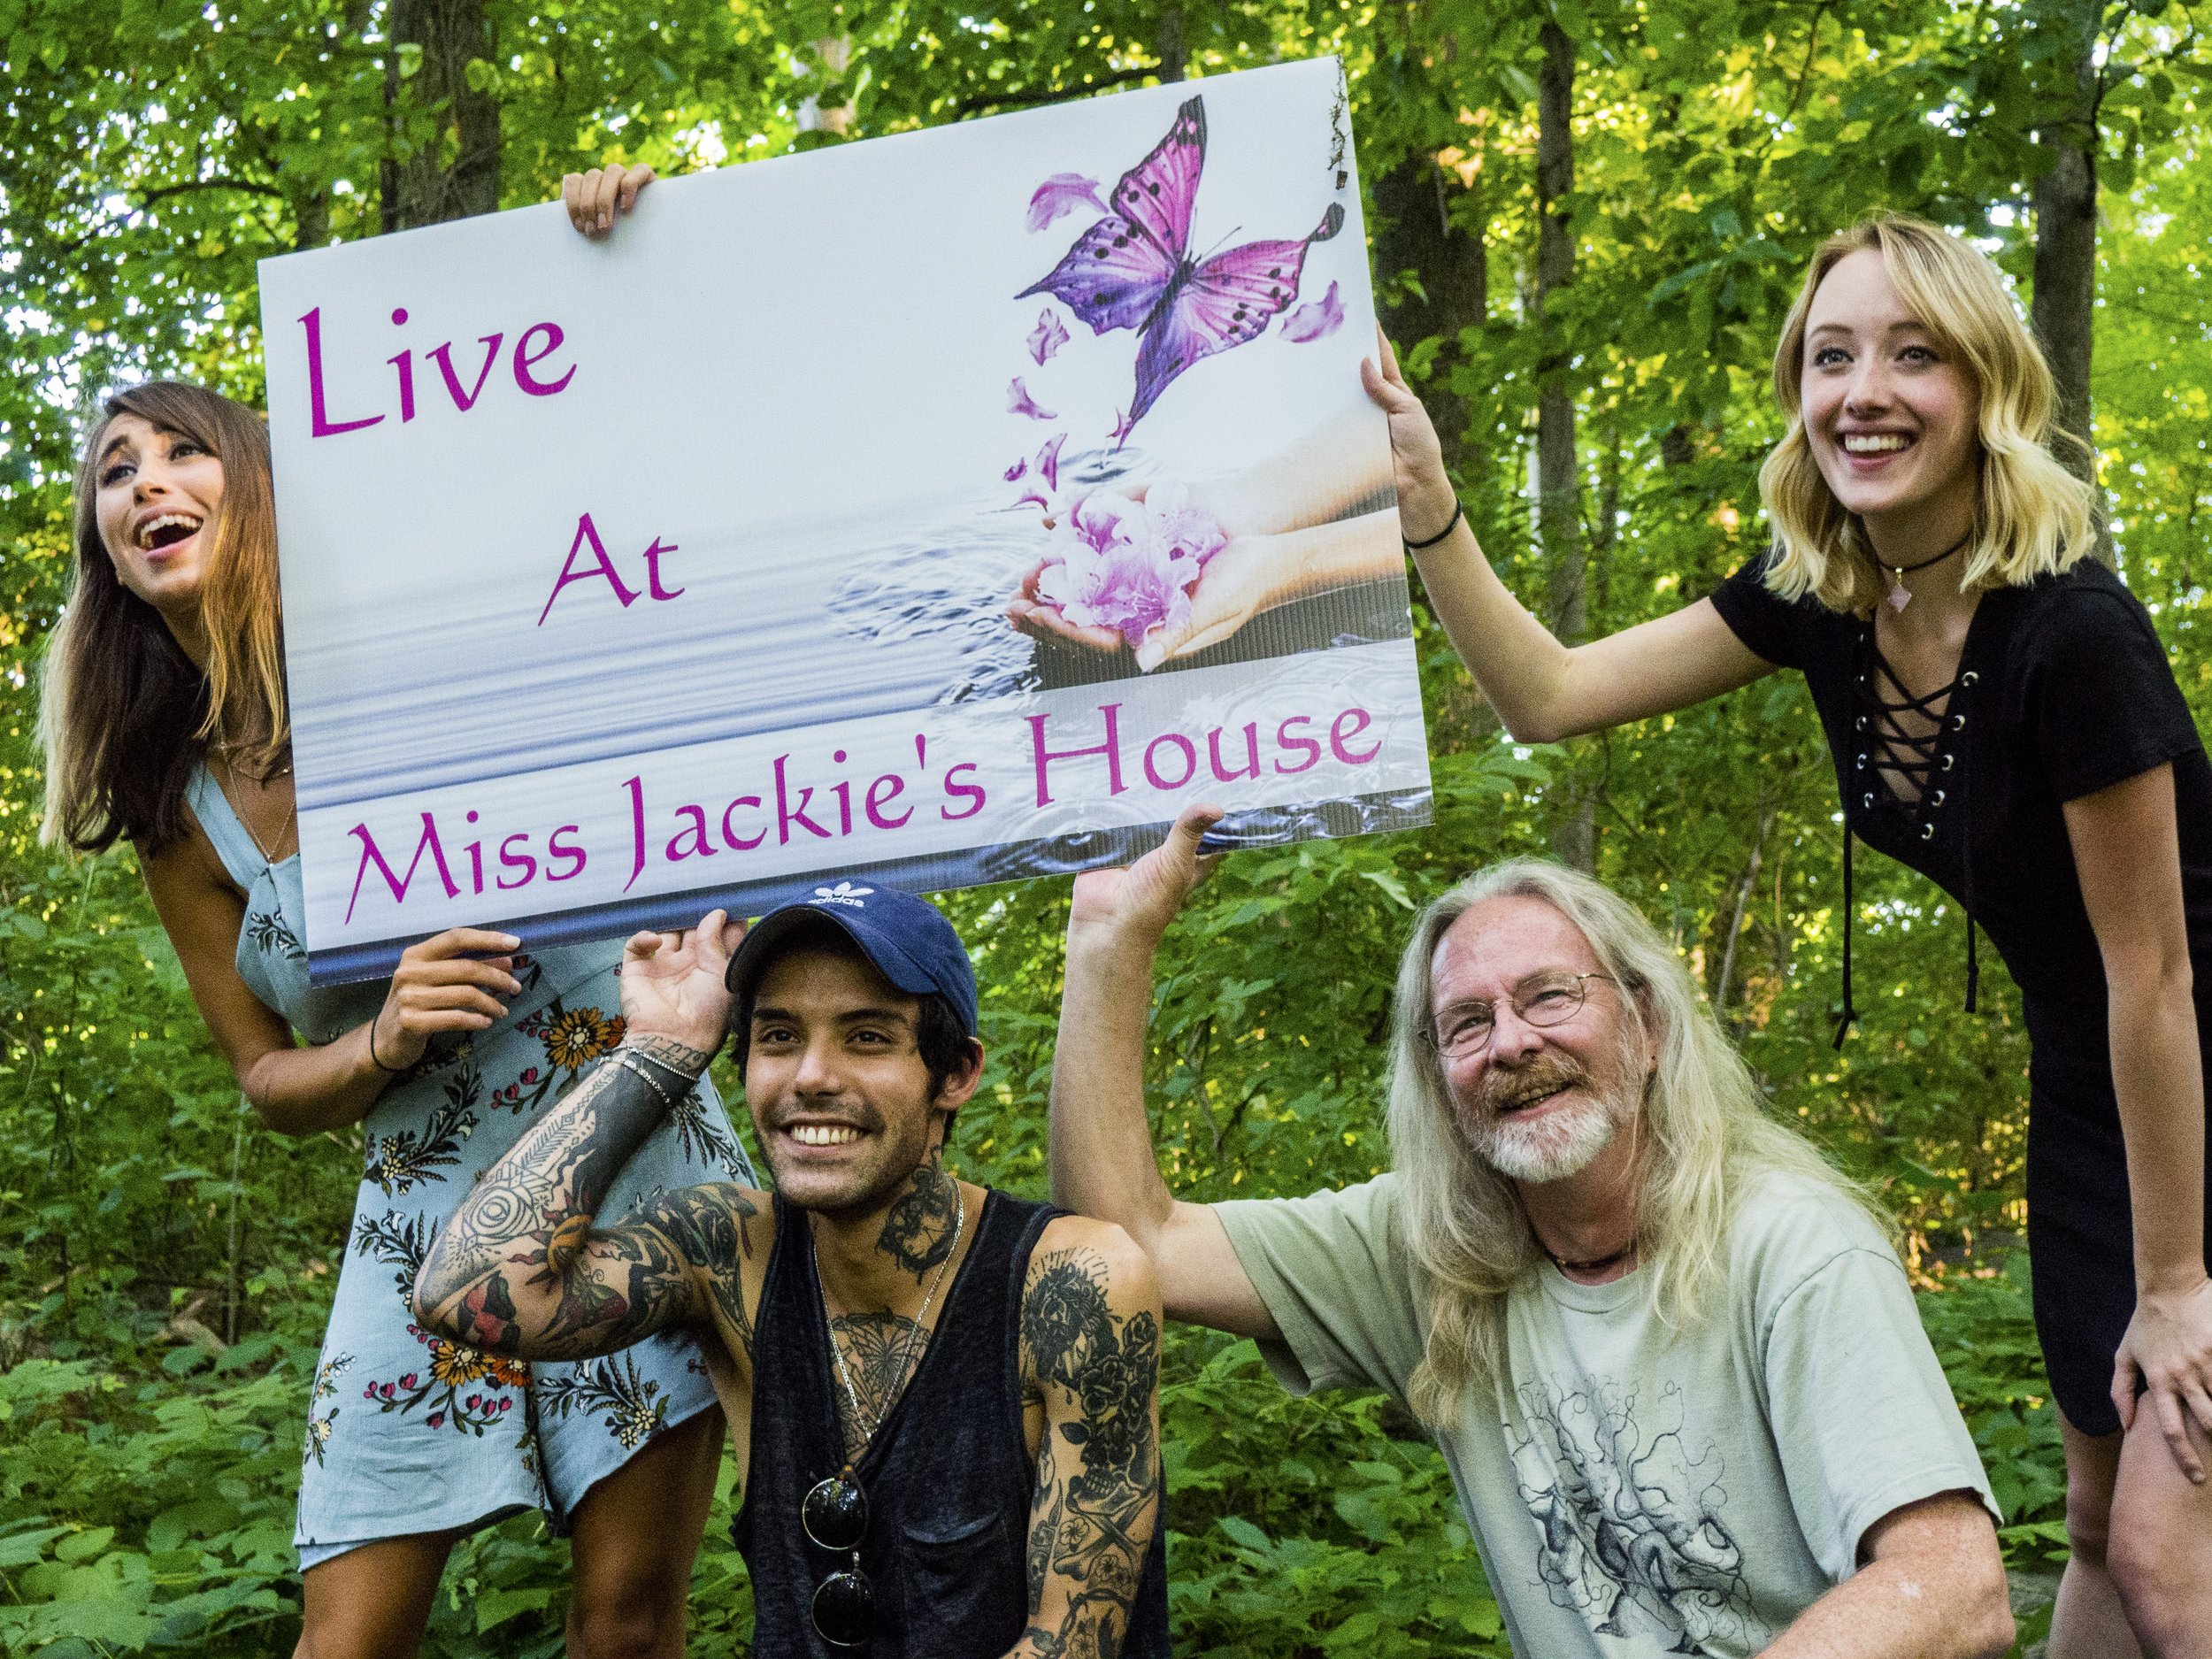 Live at Miss Jackie's House